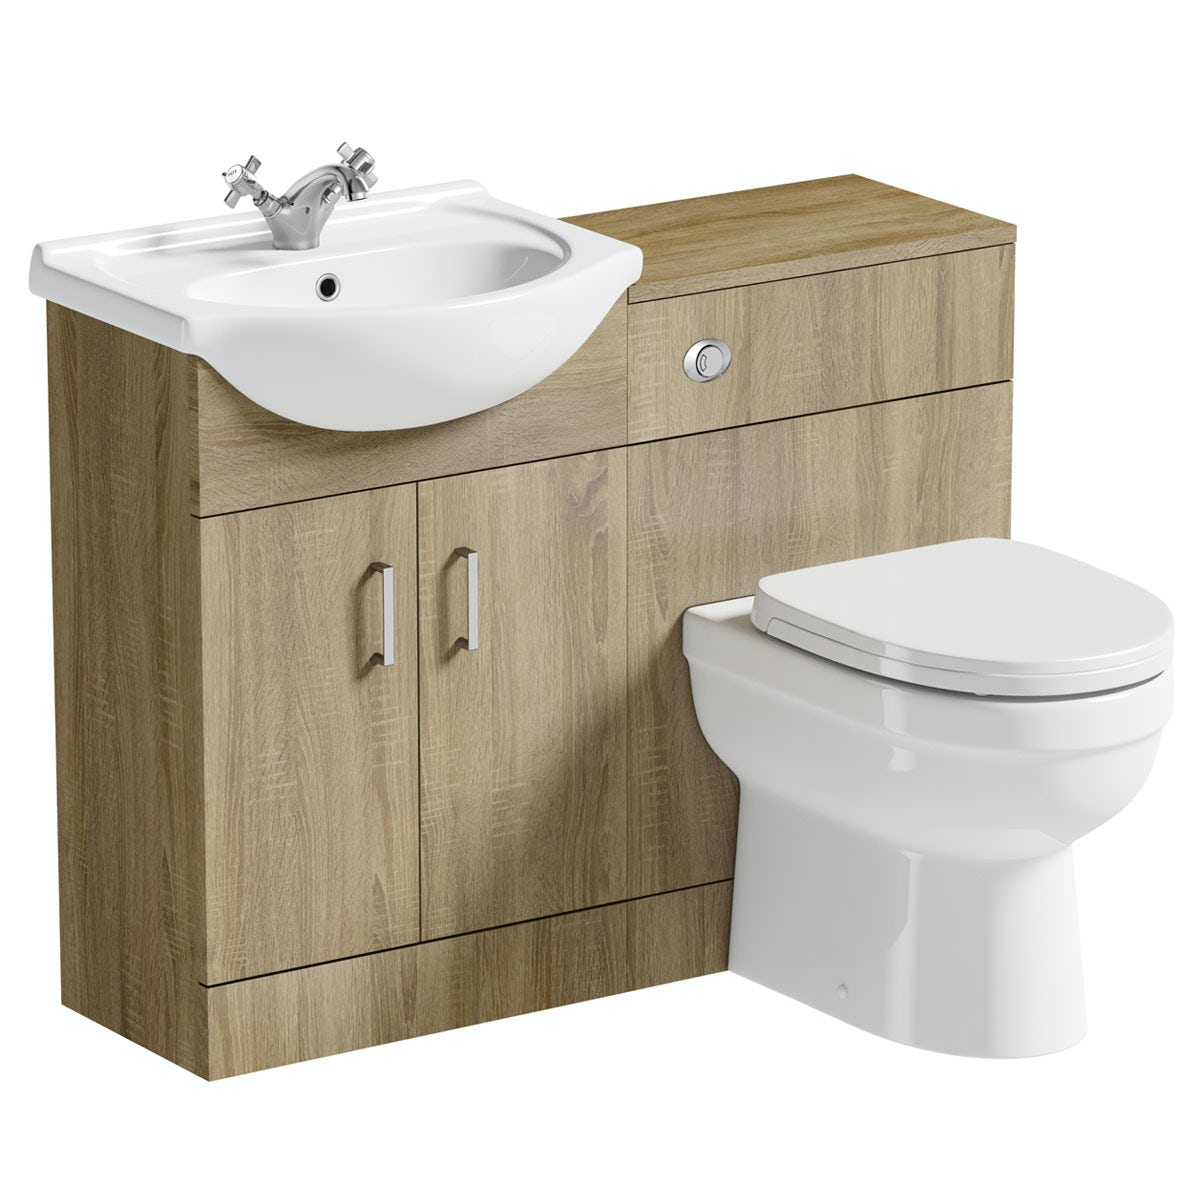 Sink And Toilet Combo Sienna Oak 1040 Combination And Eden Back To Wall Toilet